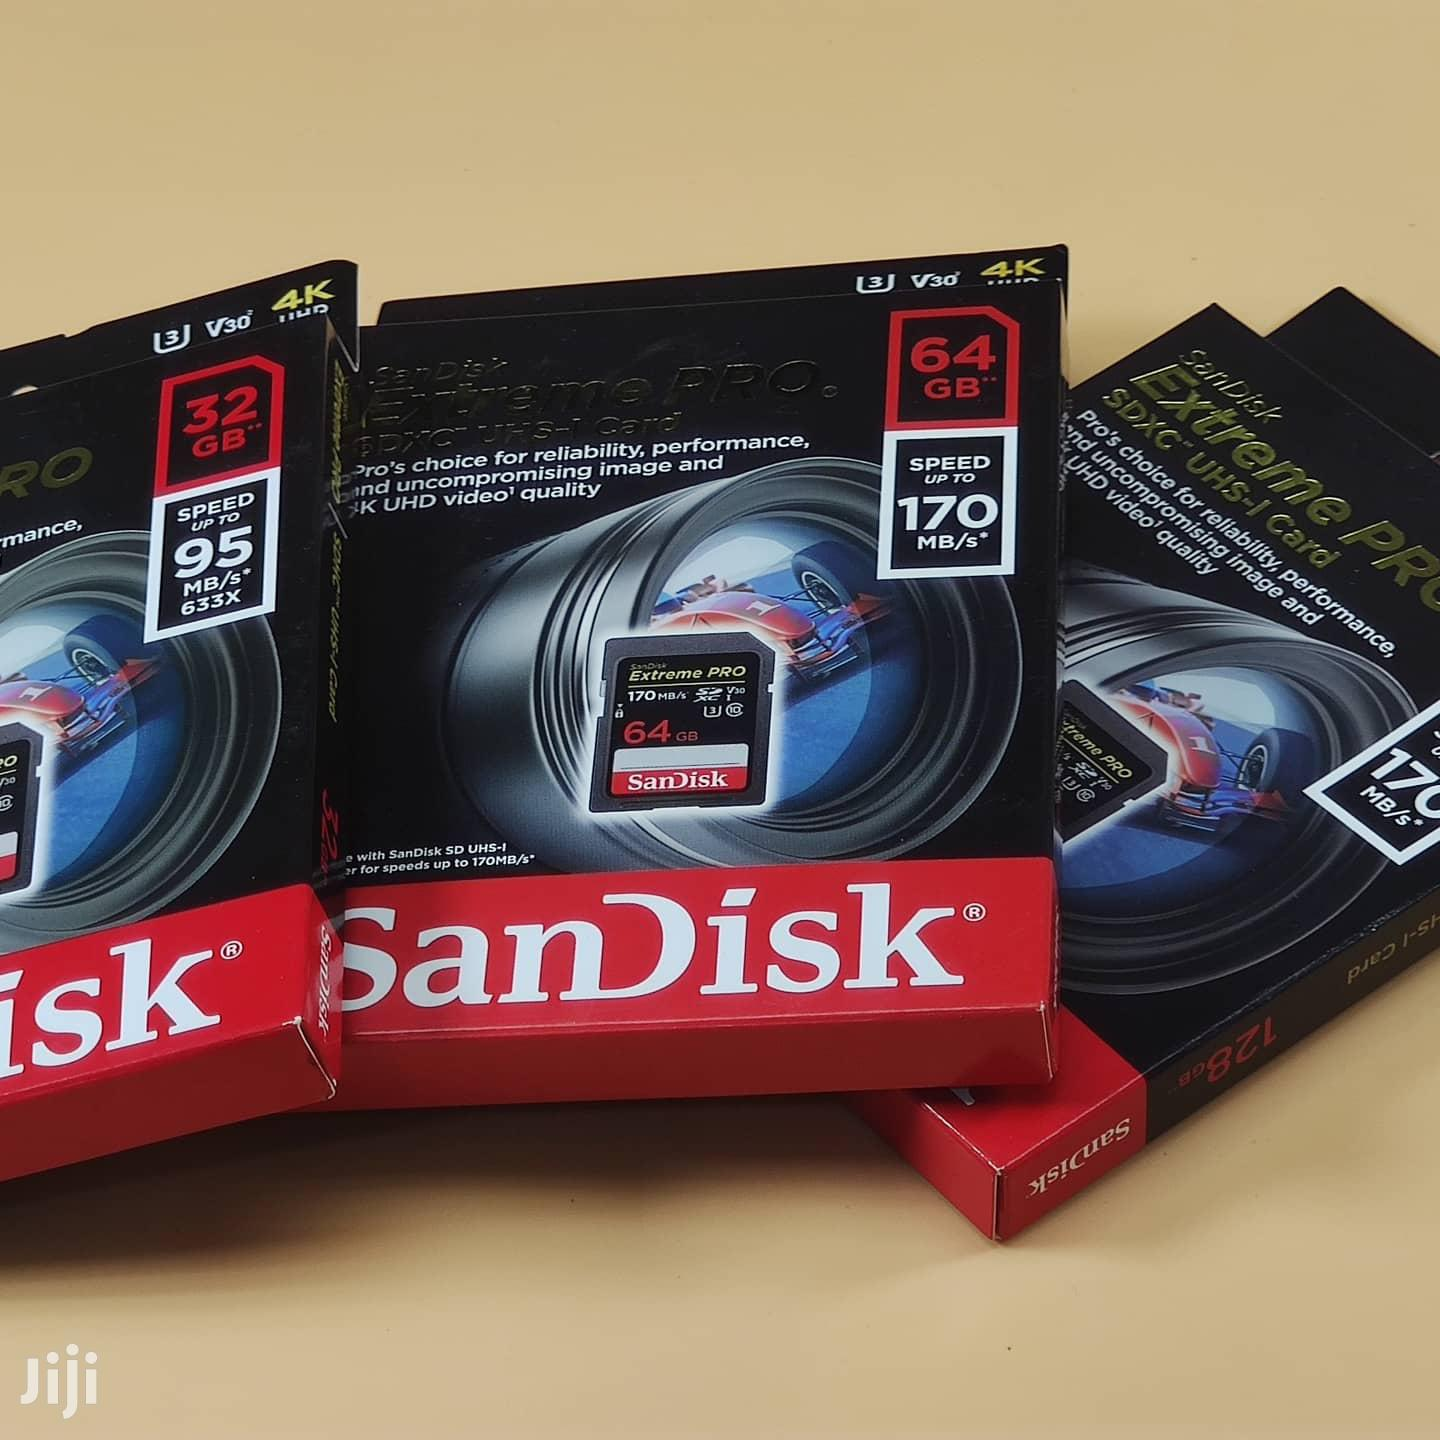 Sandisk Extreme PRO 128gb Sdxc Uhs-i Card - 4K Uhd, SD Card   Accessories & Supplies for Electronics for sale in Kinondoni, Dar es Salaam, Tanzania